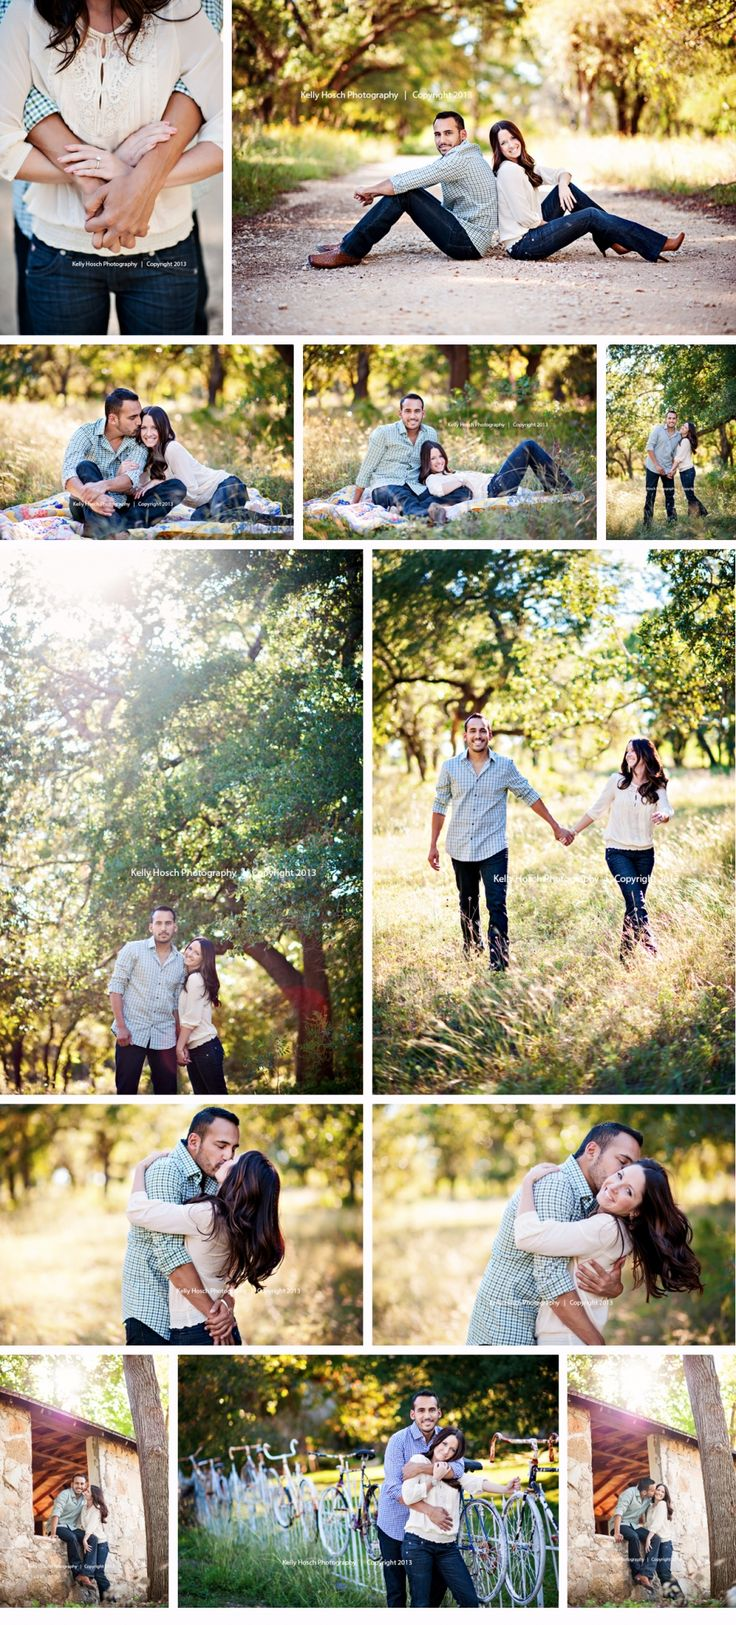 I want an outdoor engagement session with a vintage look. :)